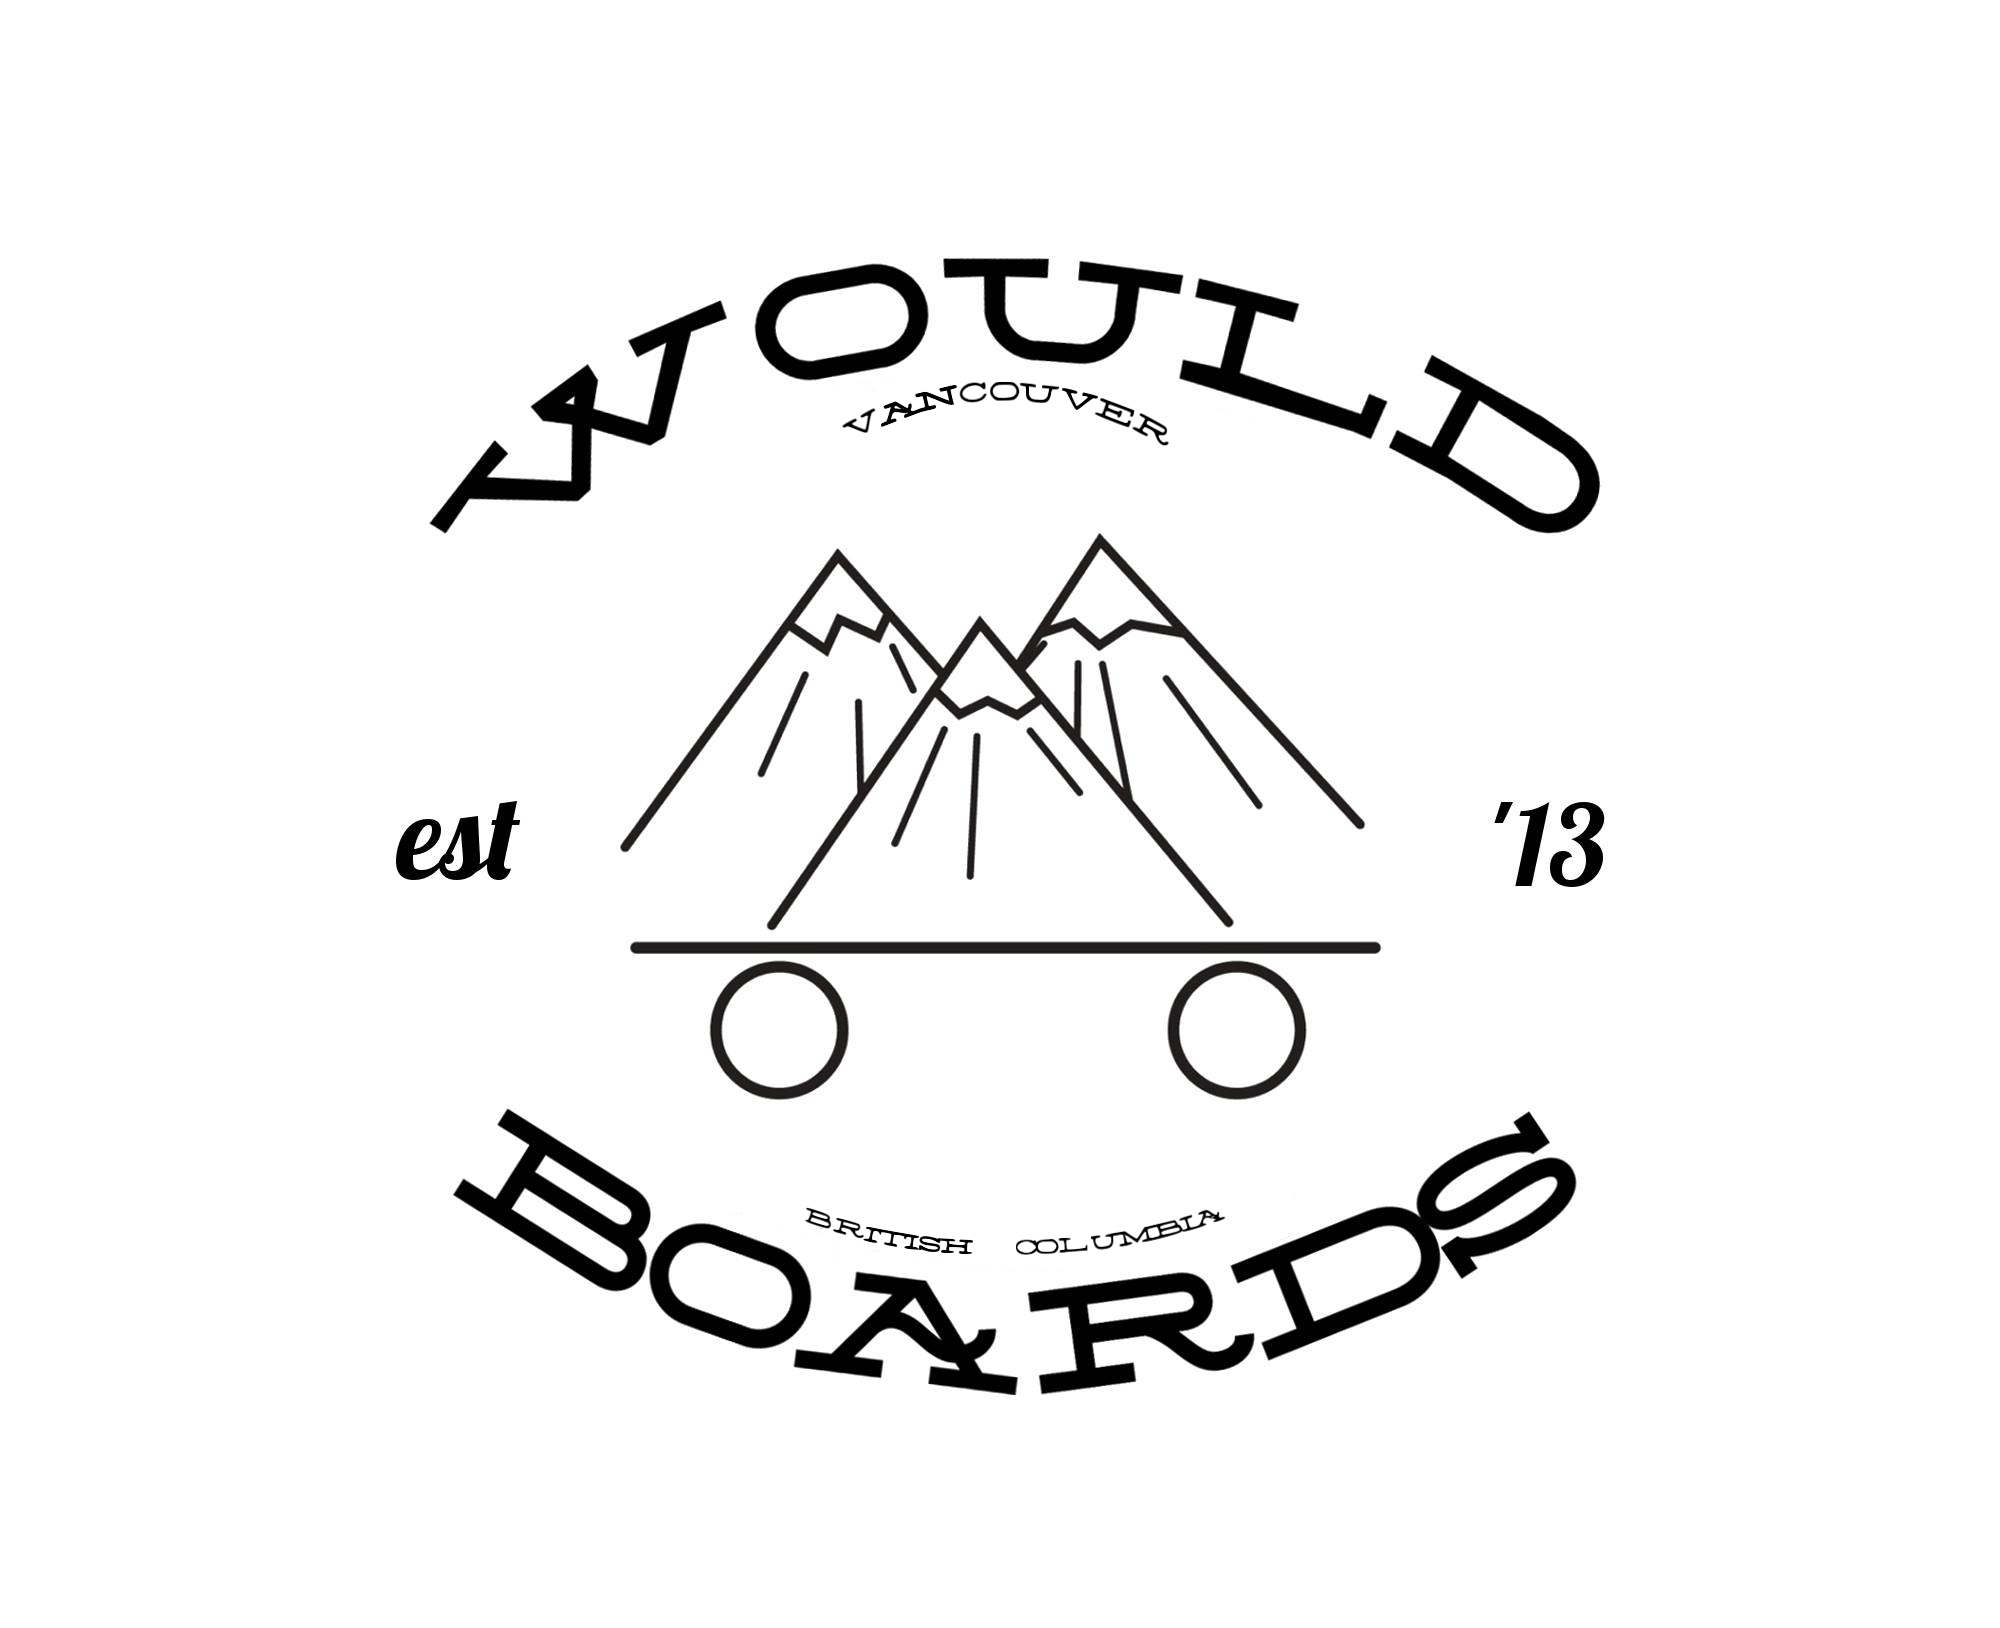 The Would Boards logo was inspired by Mount Seymour, Cypress and Grouse.